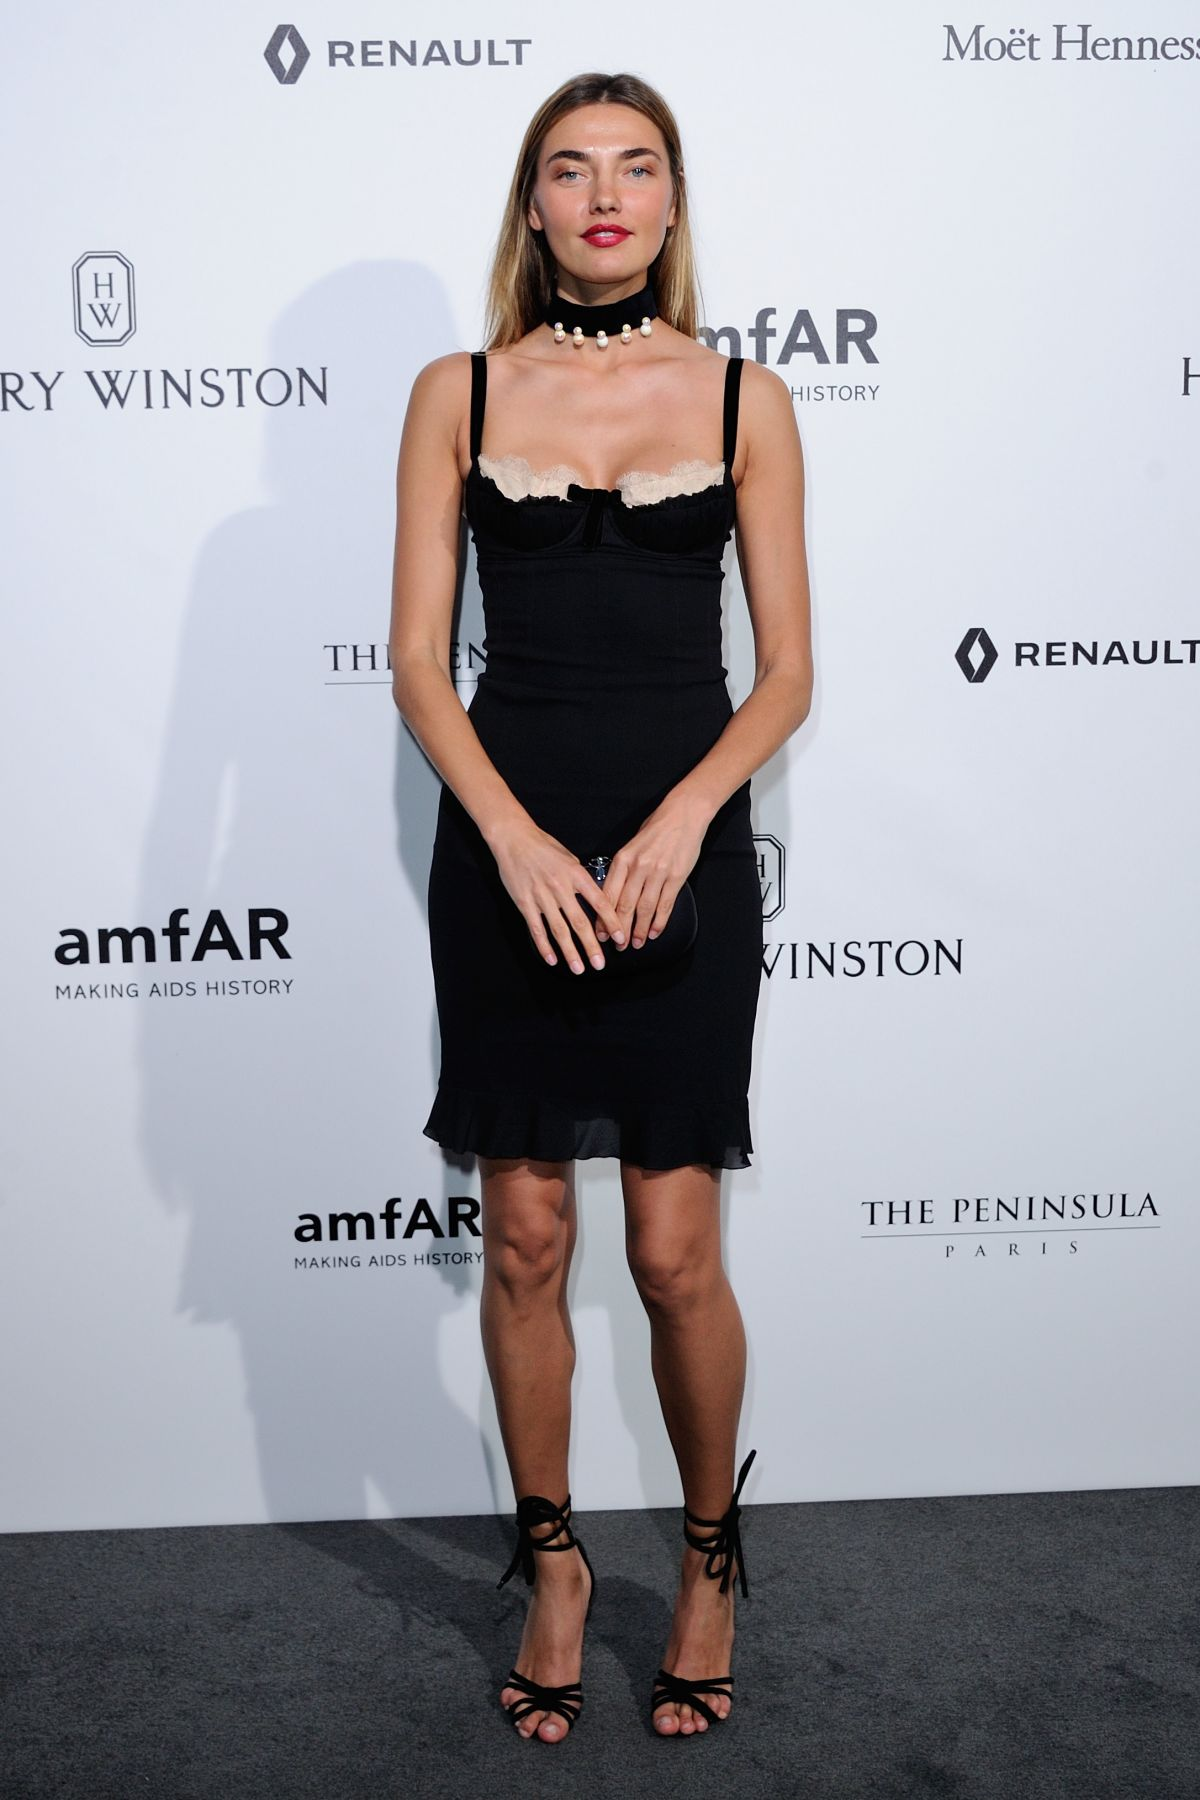 ALINA BAIKOVA at Amfar Paris Dinner in Paris 07/03/2016